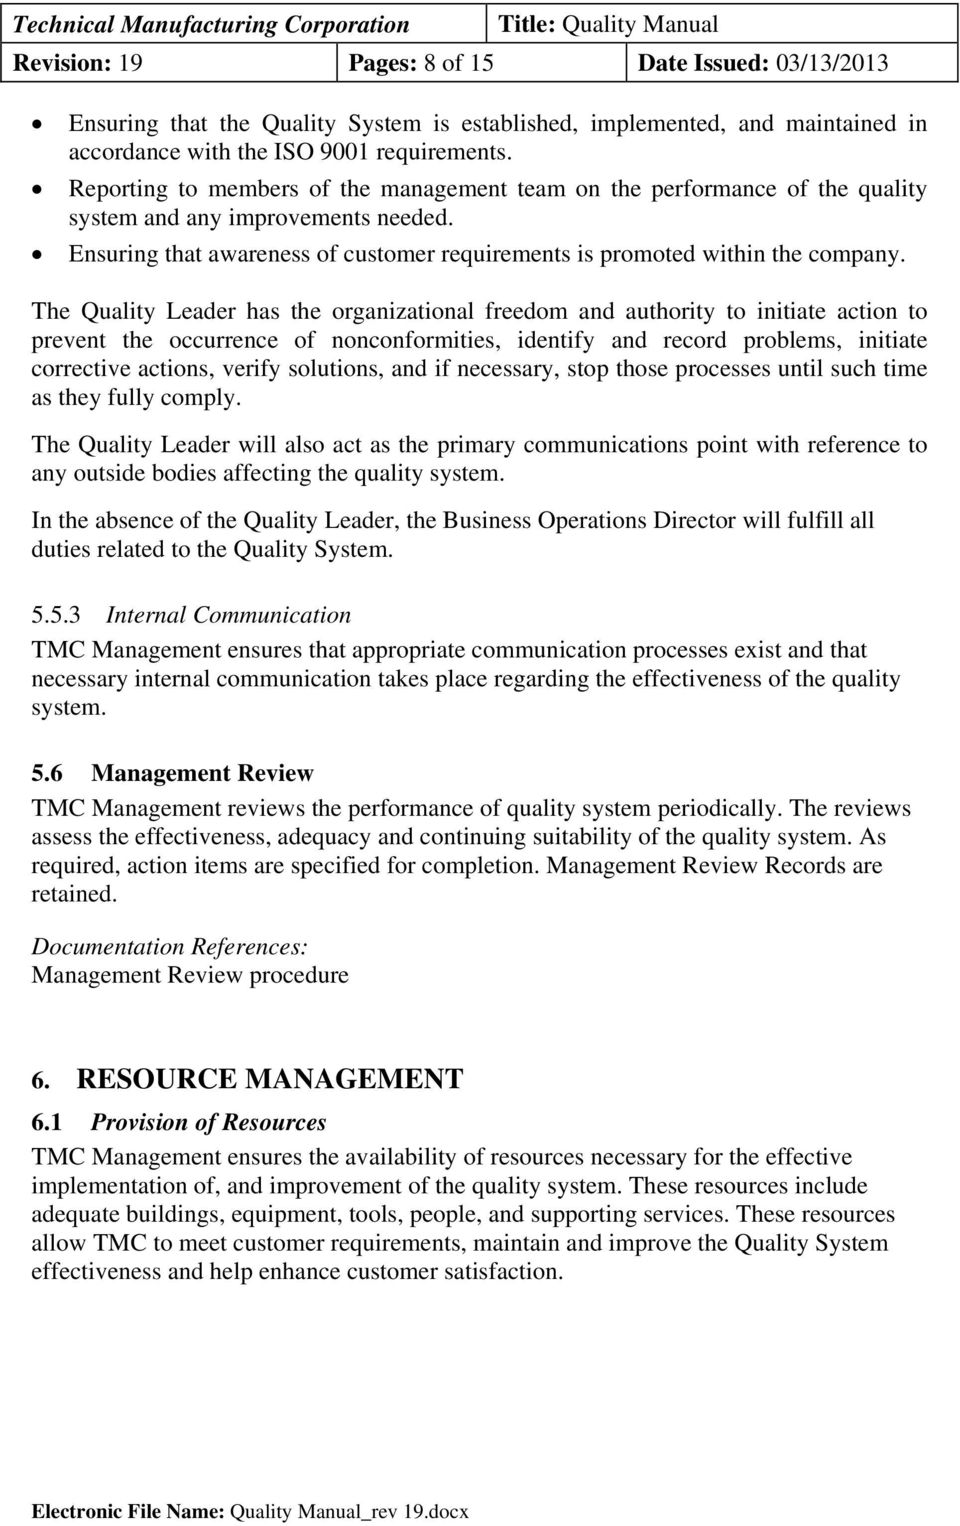 The Quality Leader has the organizational freedom and authority to initiate action to prevent the occurrence of nonconformities, identify and record problems, initiate corrective actions, verify